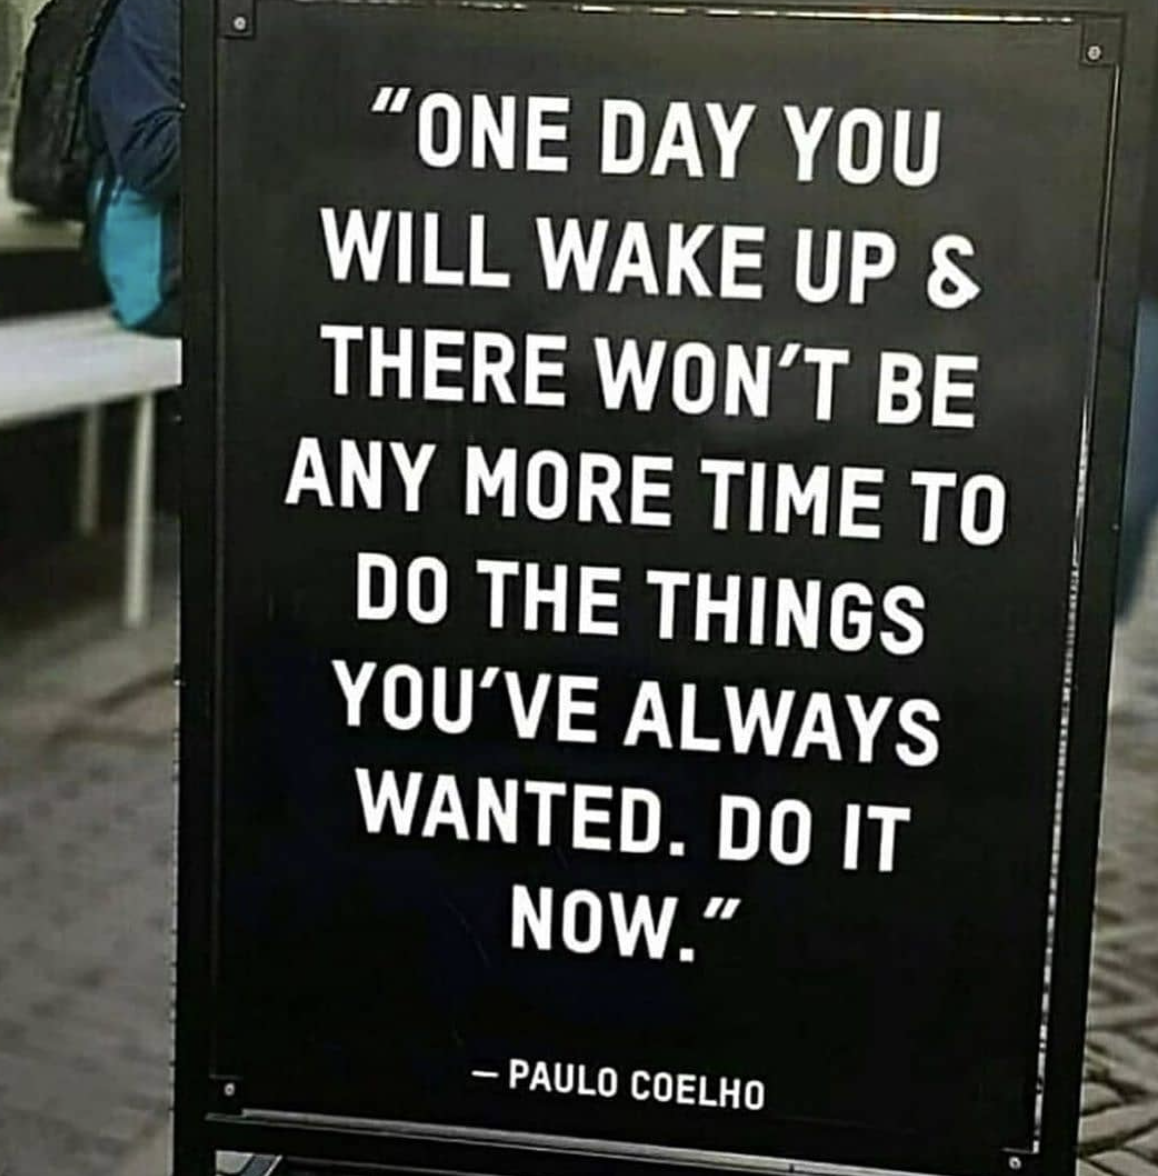 [Image] Whatever you want to do, do it now, before it's too late.